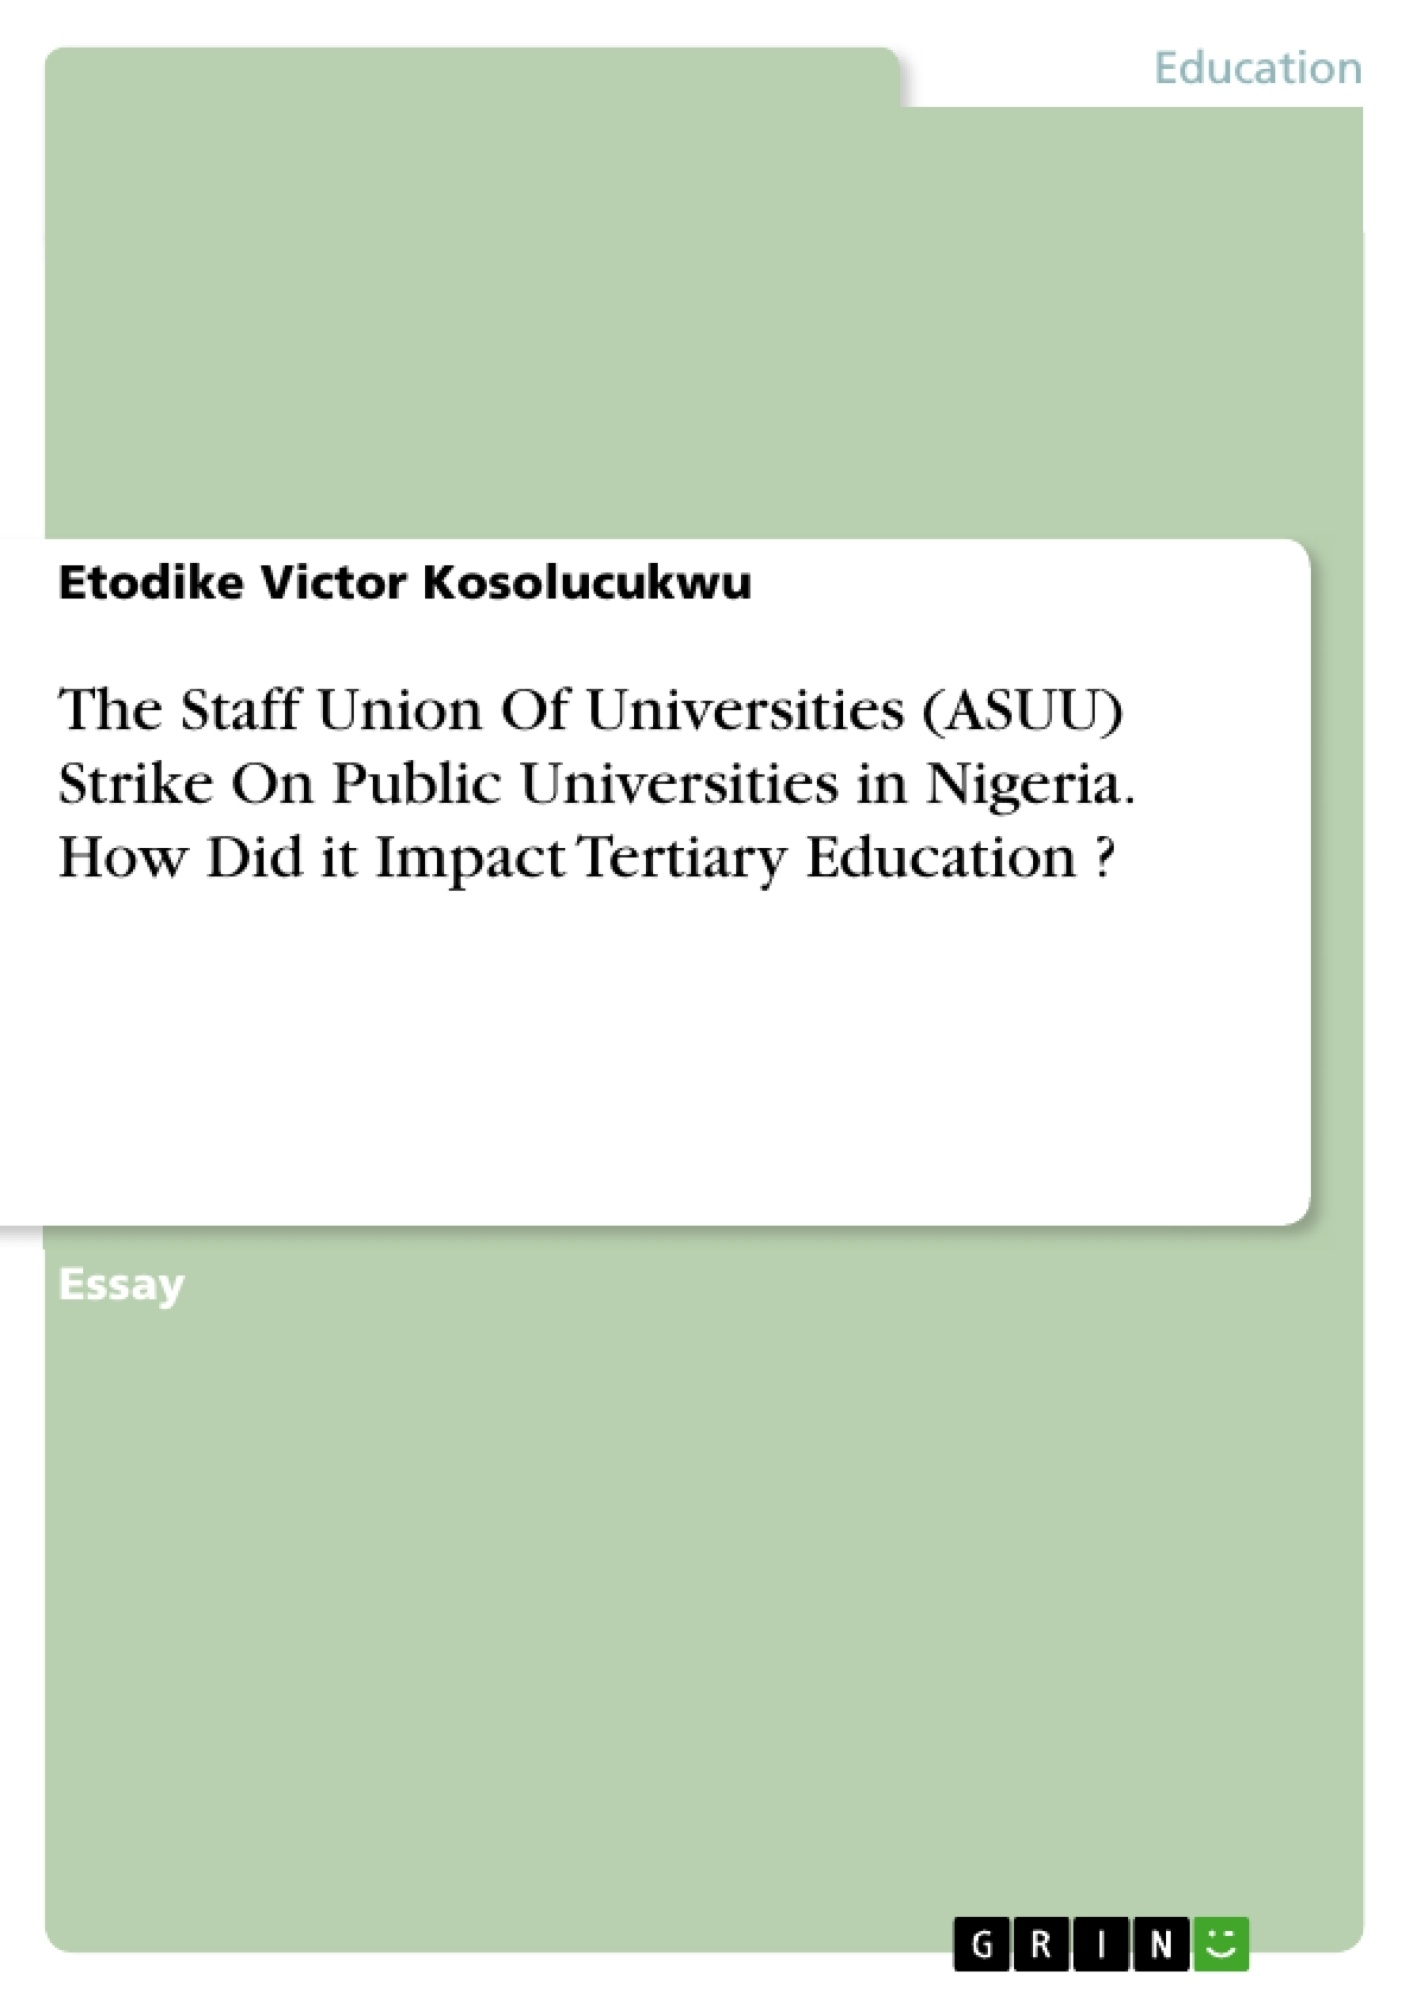 Title: The Staff Union Of Universities (ASUU) Strike On Public Universities in Nigeria. How Did it Impact Tertiary Education ?